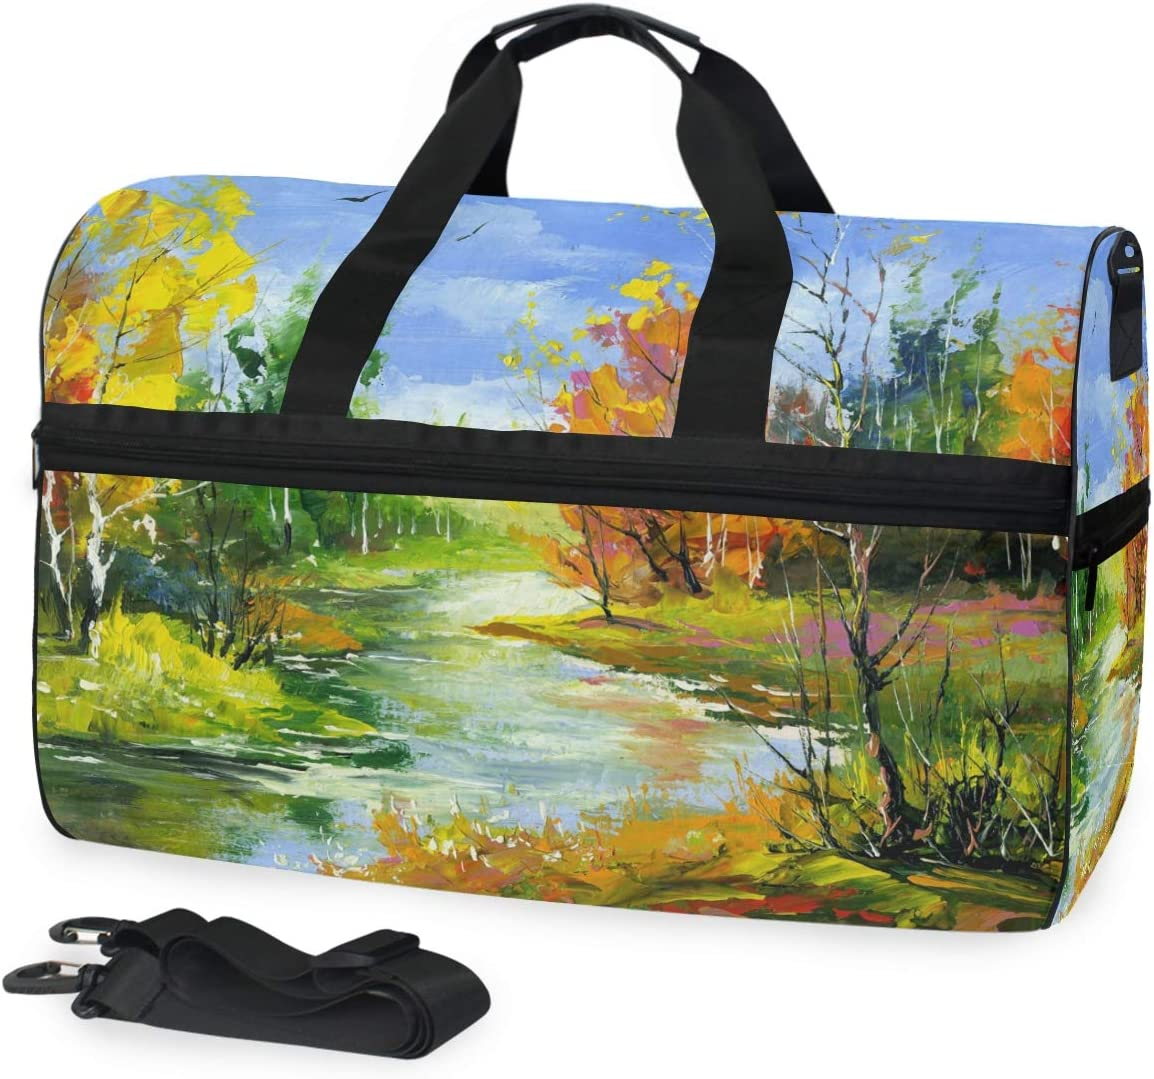 FANTAZIO Autumn Landscape With The Wood River Sports Duffle Bag Gym Bag Travel Duffel with Adjustable Strap